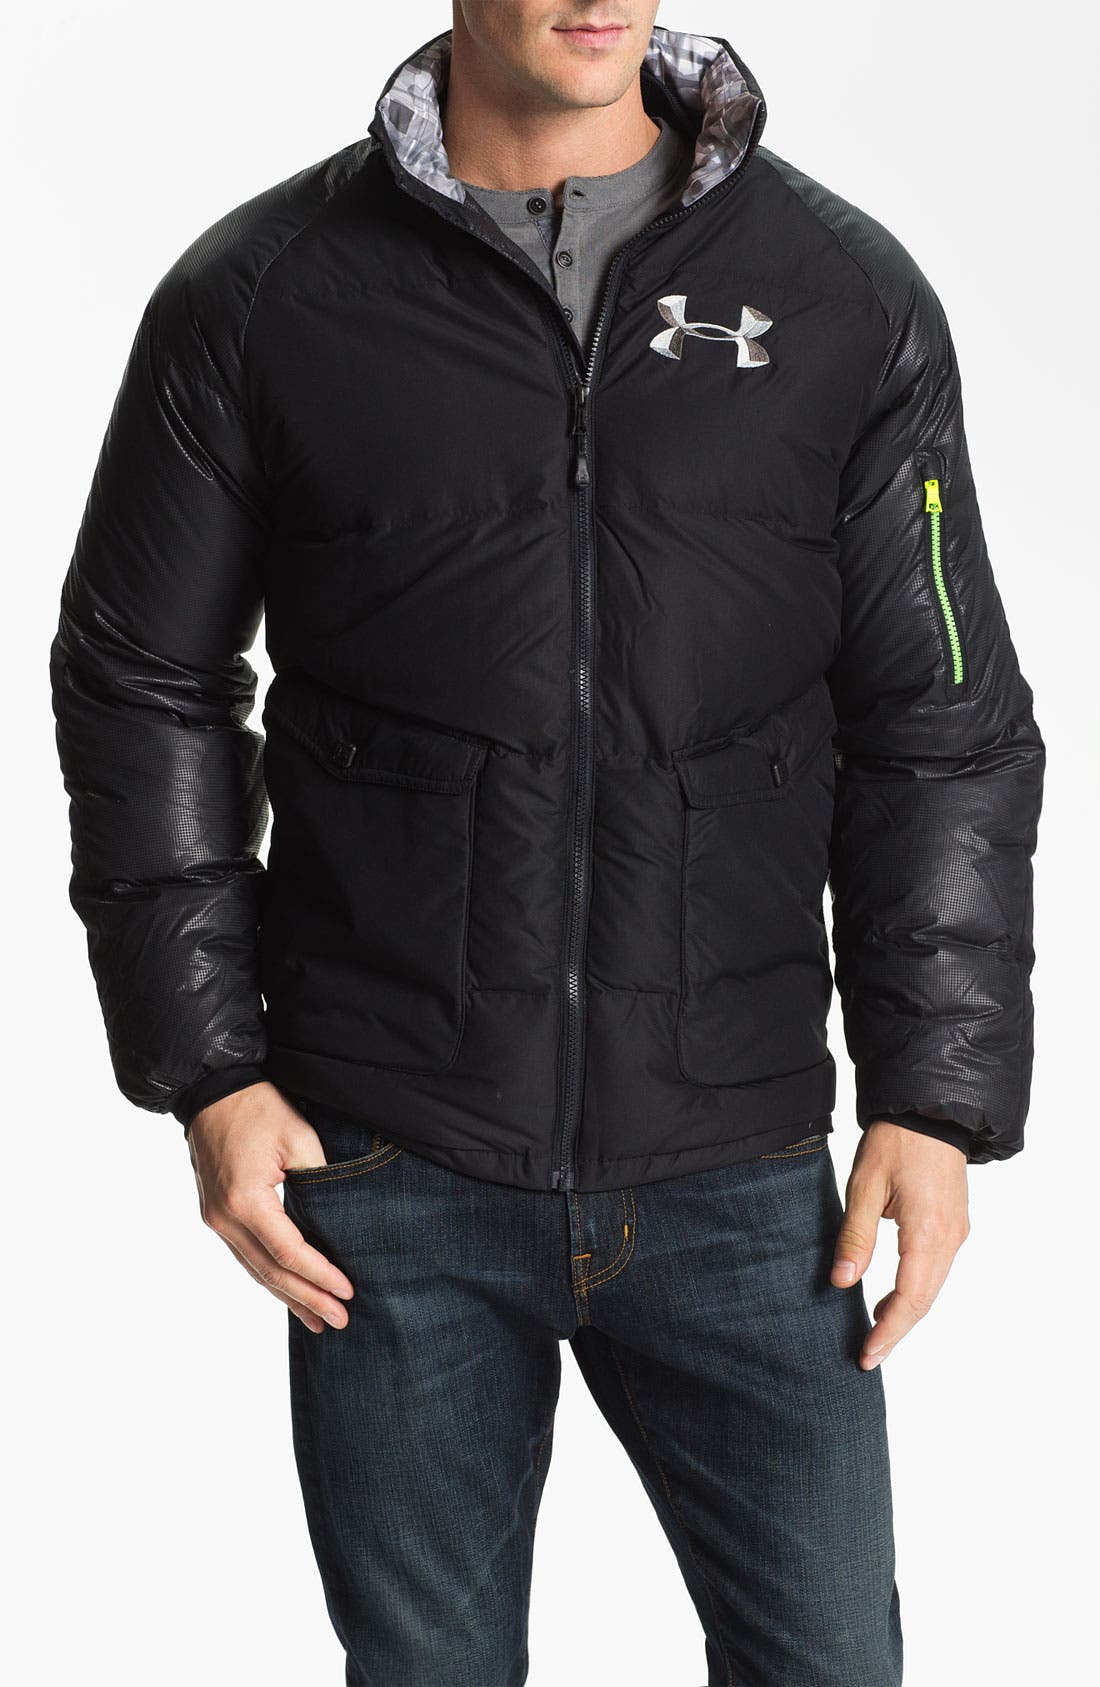 Main Image - Under Armour  'Rivalry Storm'  Jacket